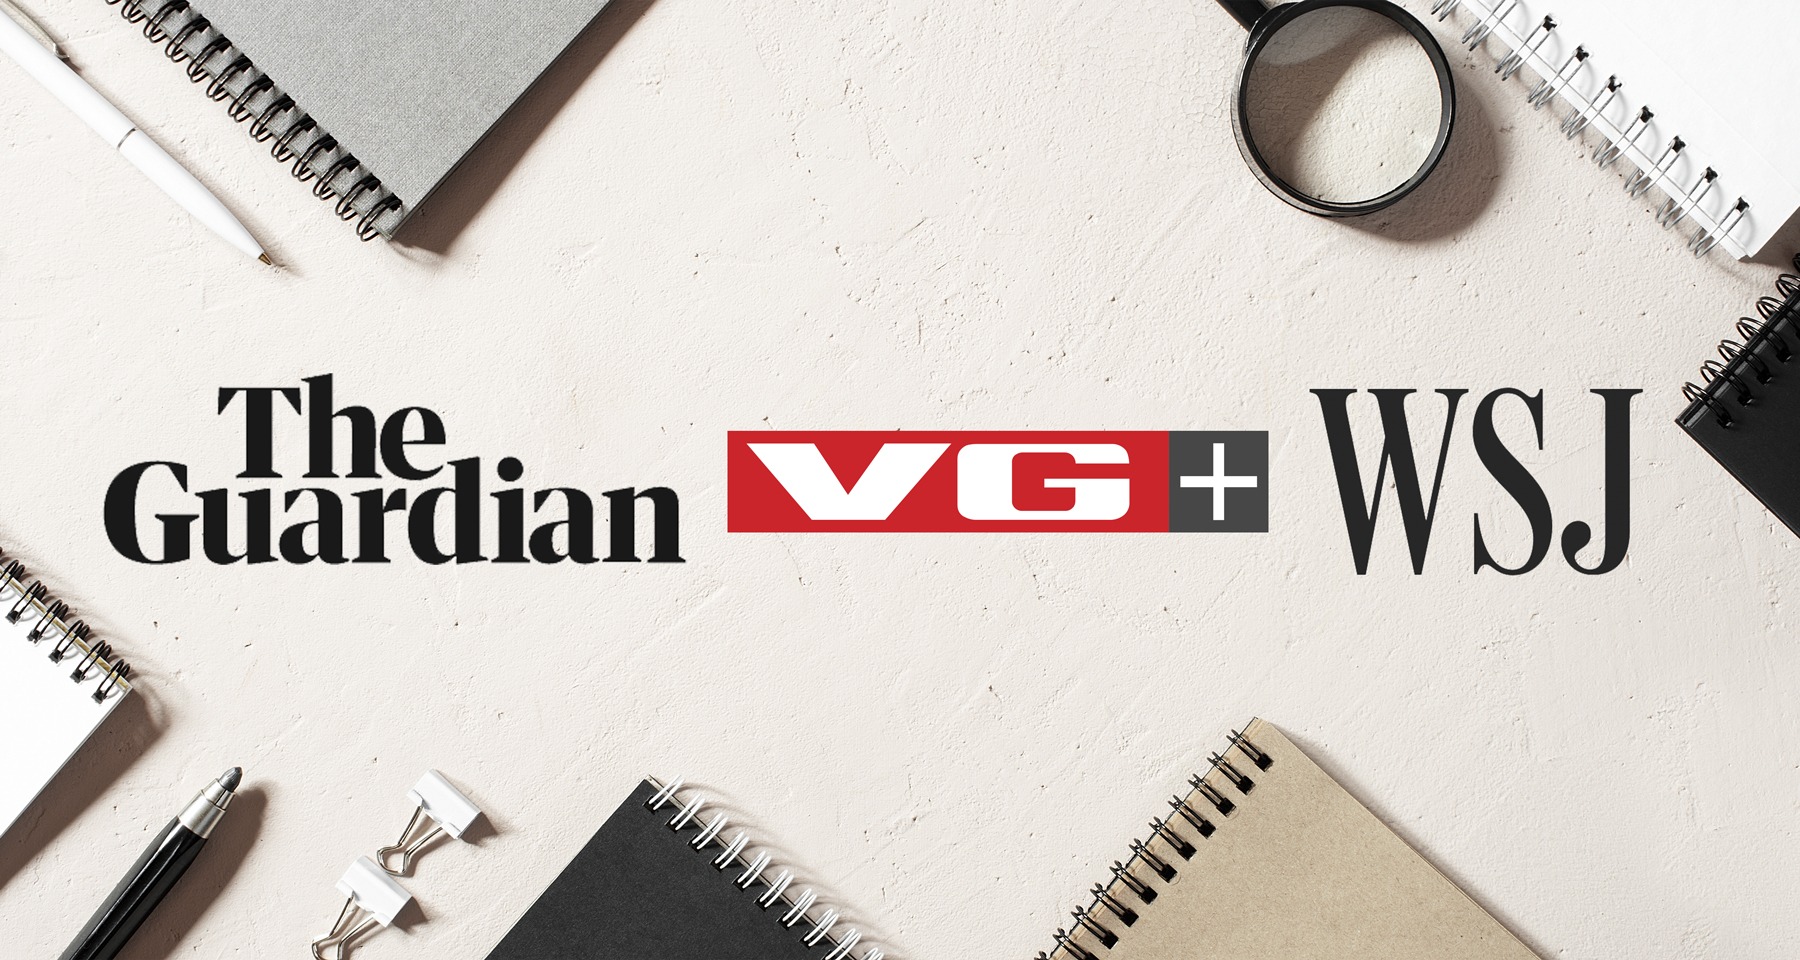 WSJ, Guardian, VG+ share details of their digital subscriptions success